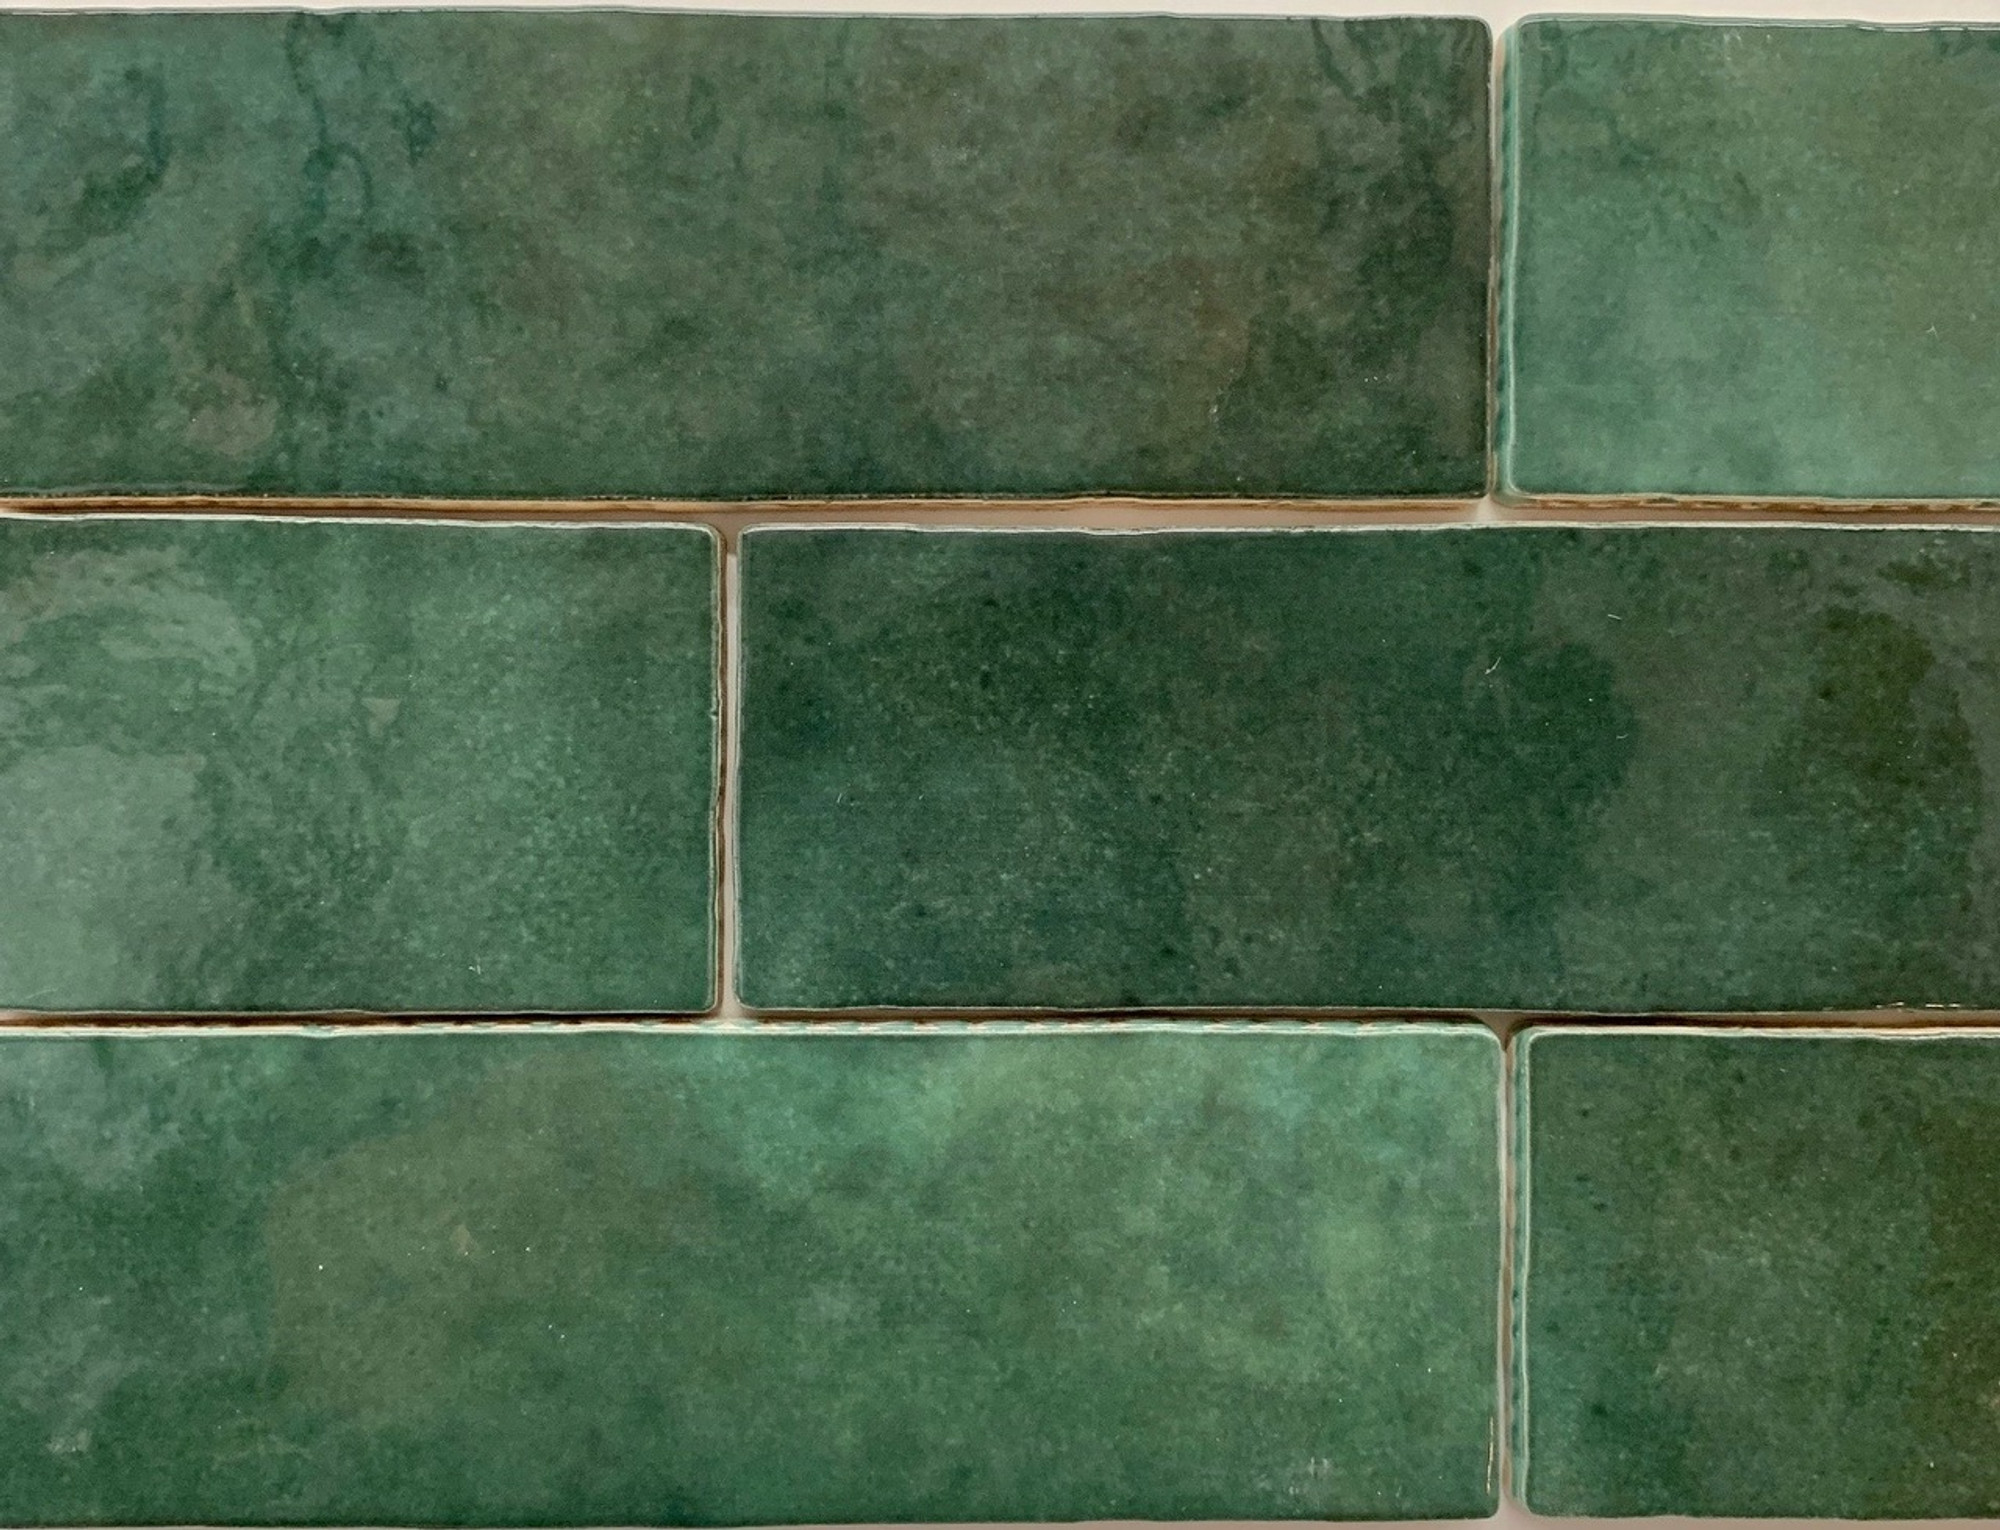 Sample Of Forest Green Handmade Style Spanish Subway Wall Tile Buy Online Tiles4less